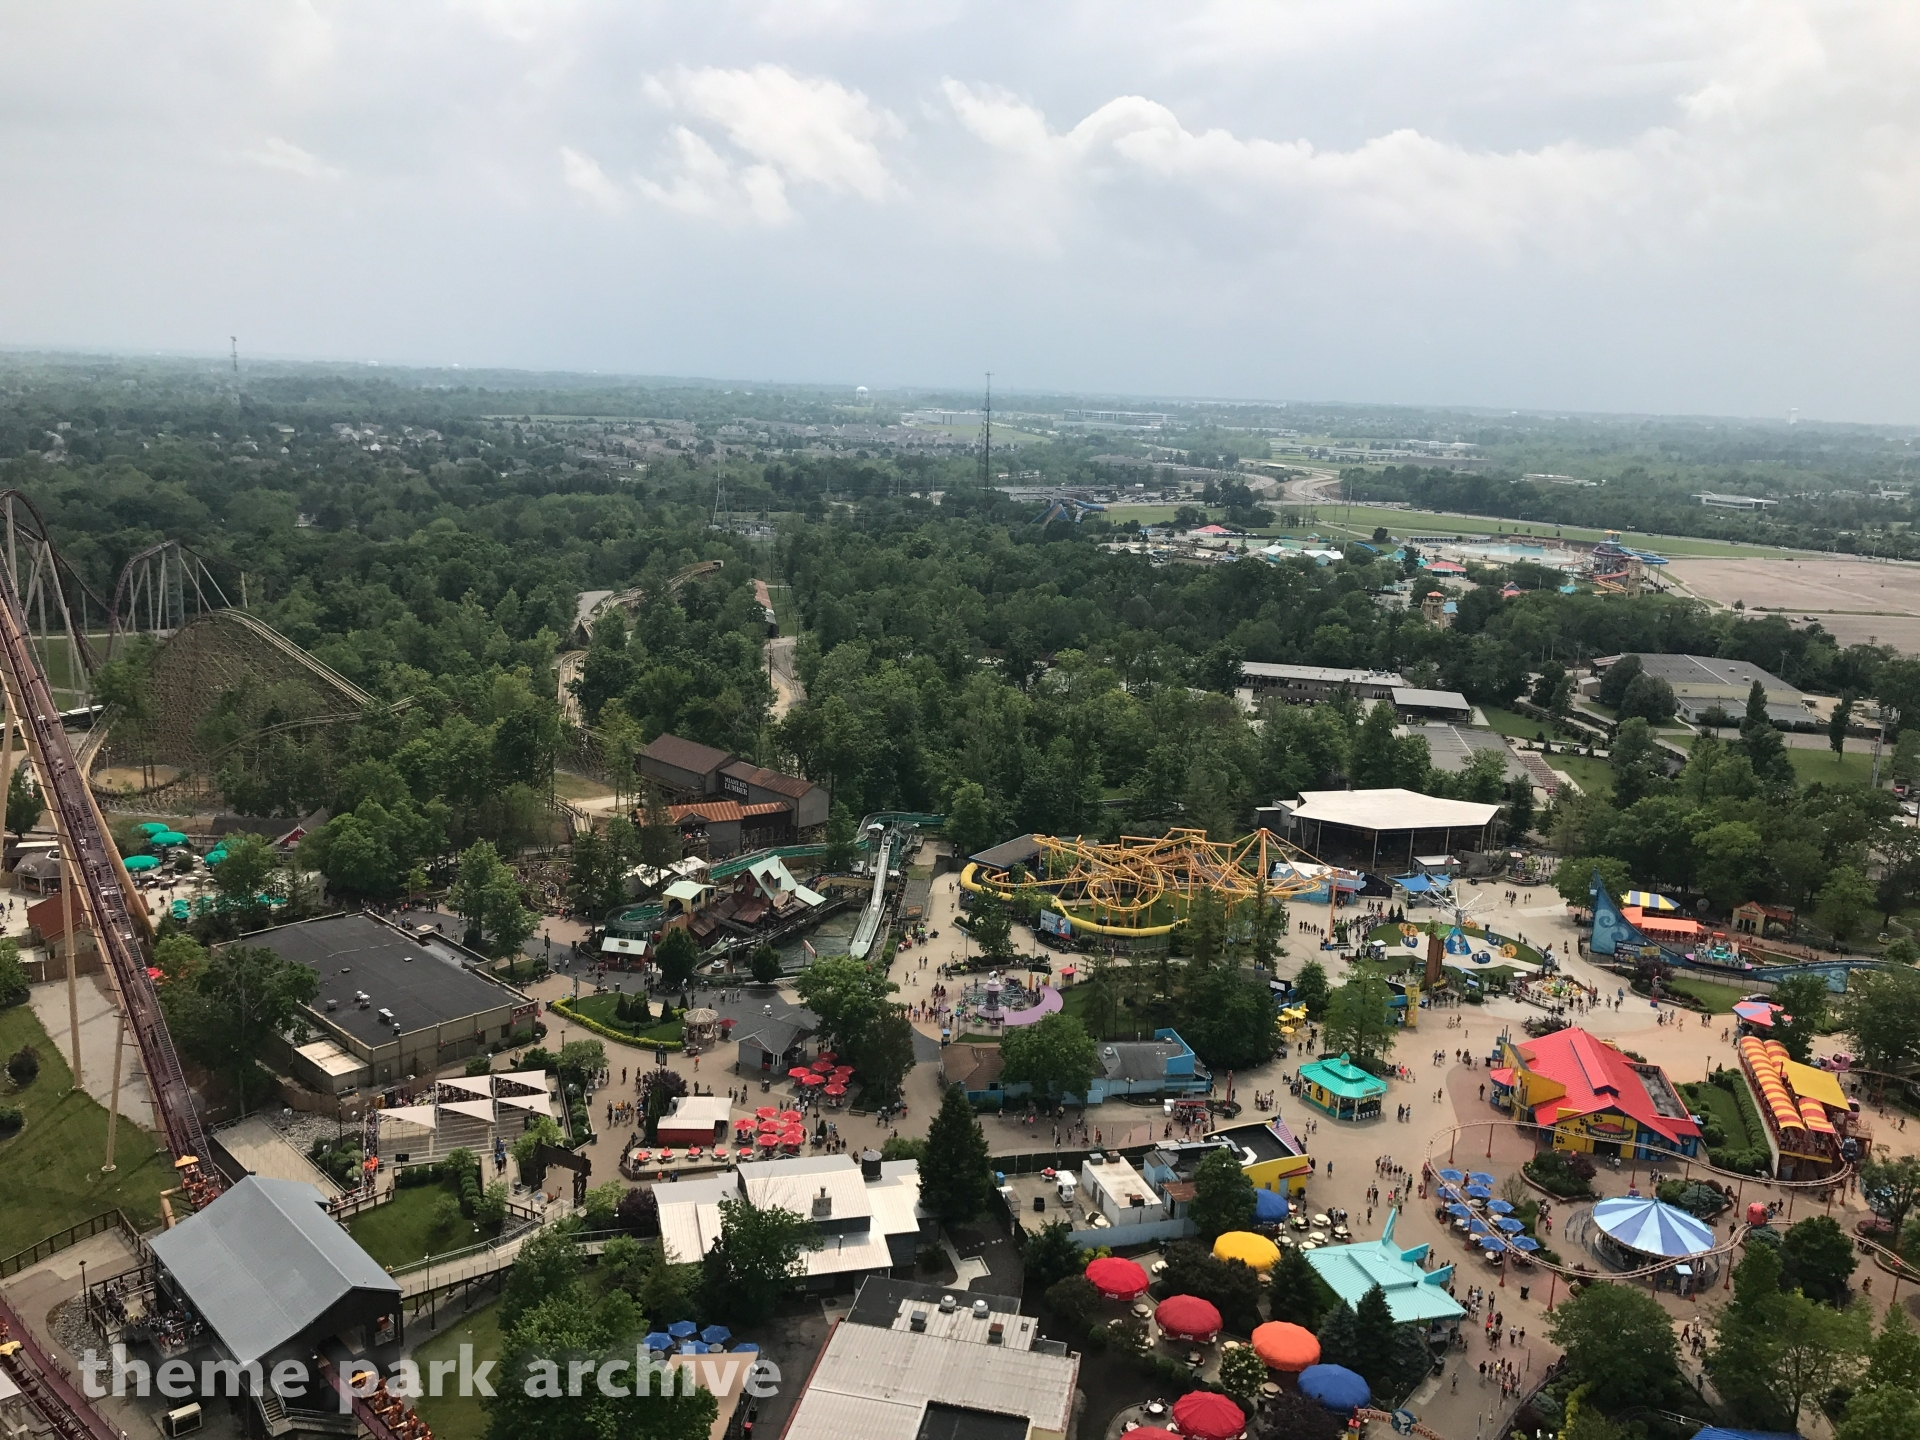 Planet Snoopy at Kings Island